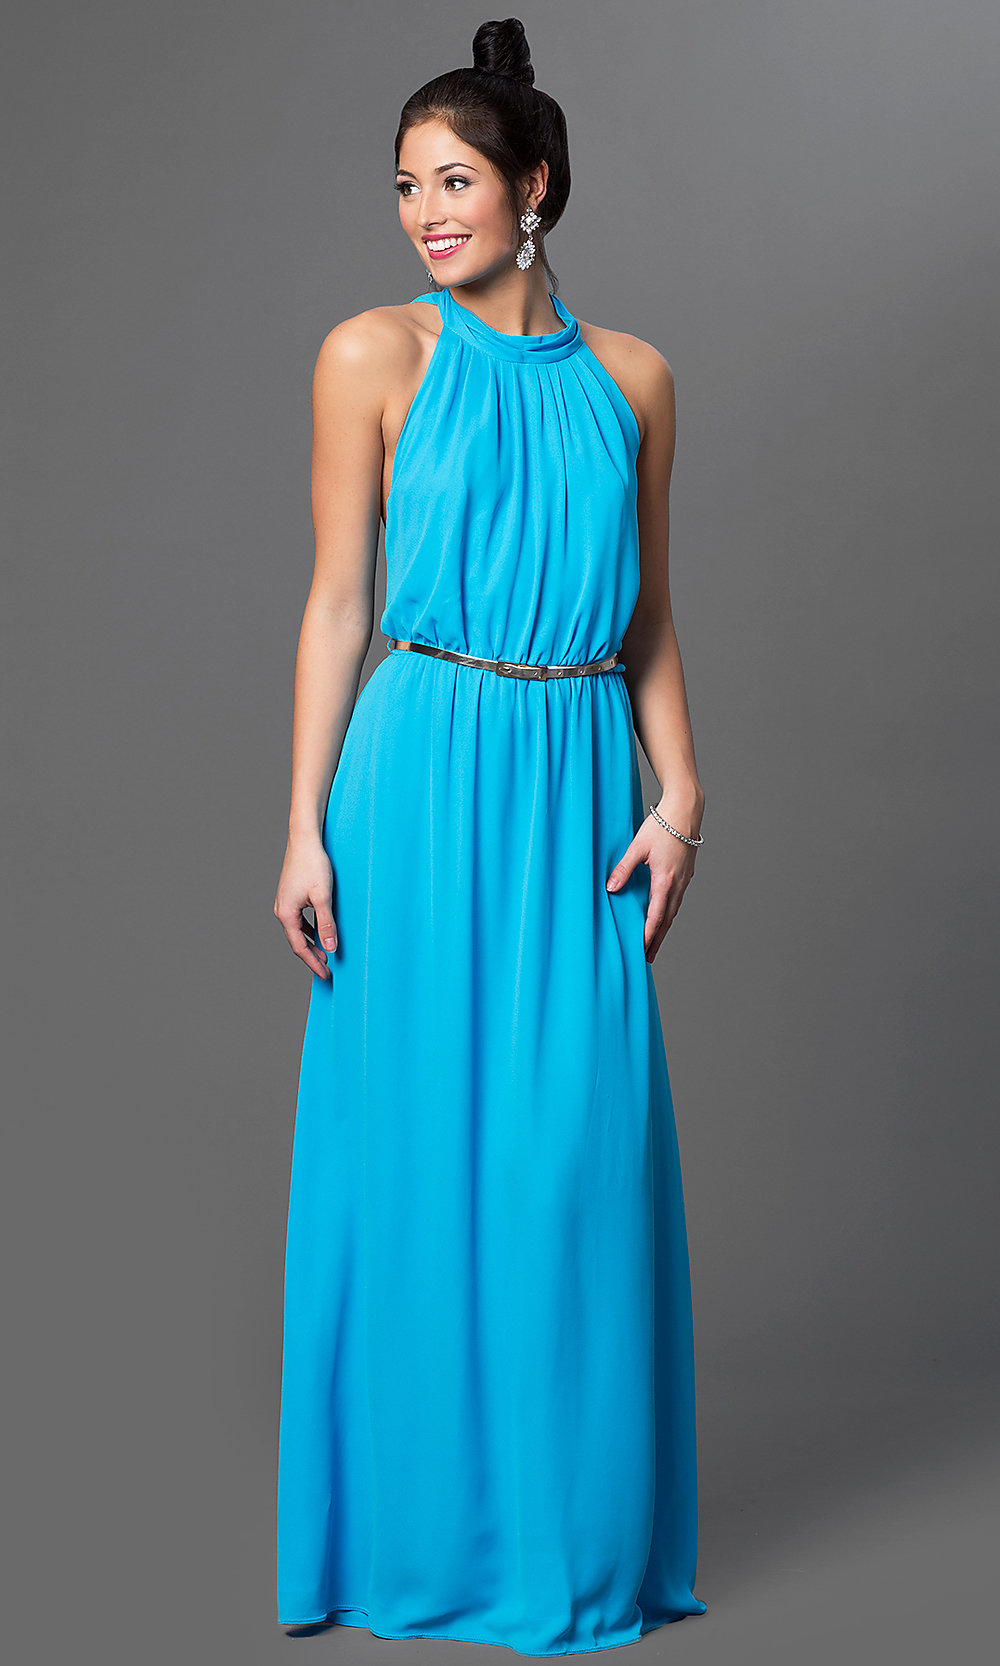 Aqua Draped Back High Neck Formal Dress - PromGirl